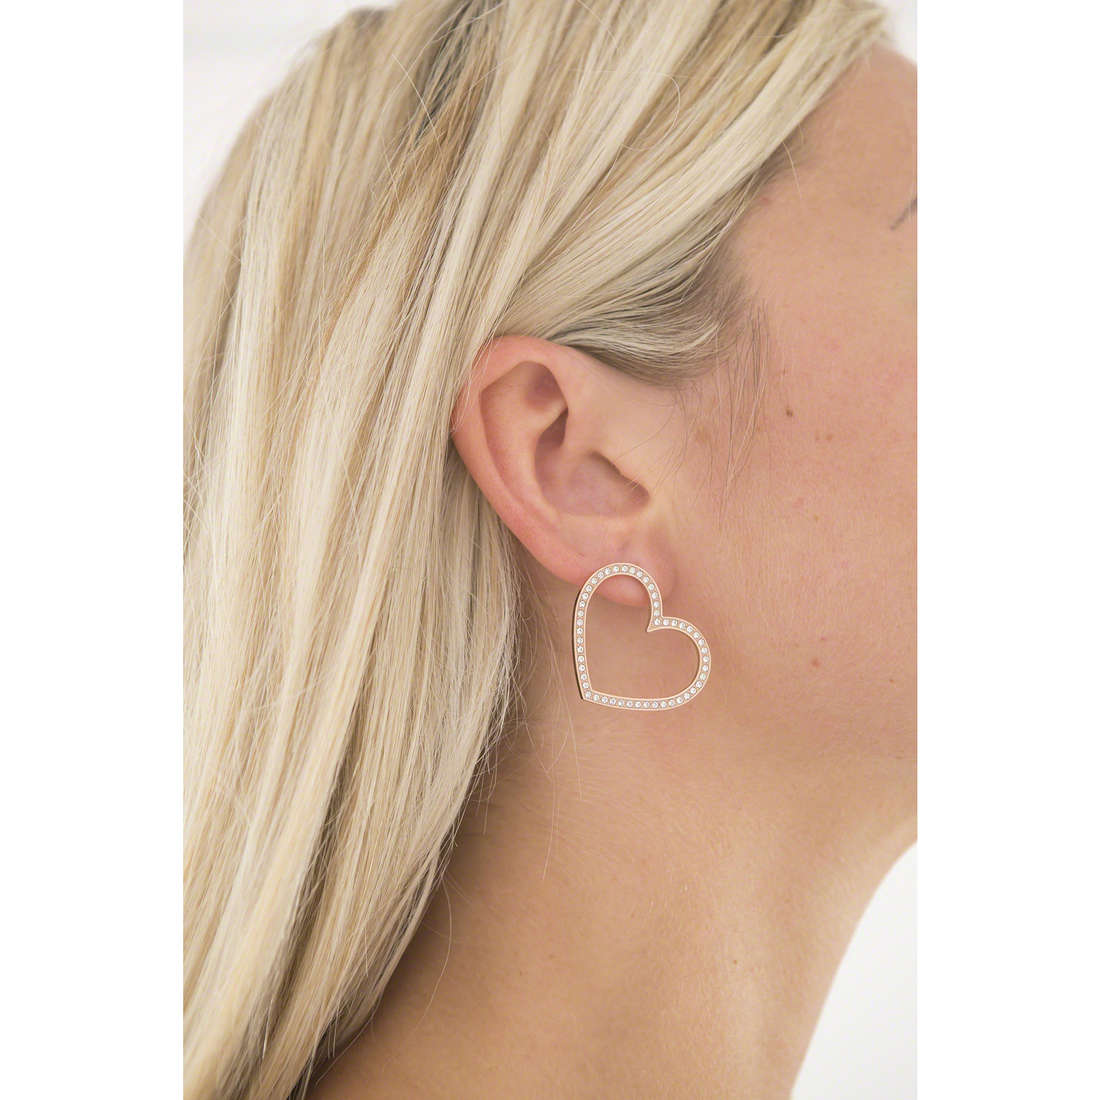 Brosway boucles d'oreille Minuetto femme BMU22 indosso